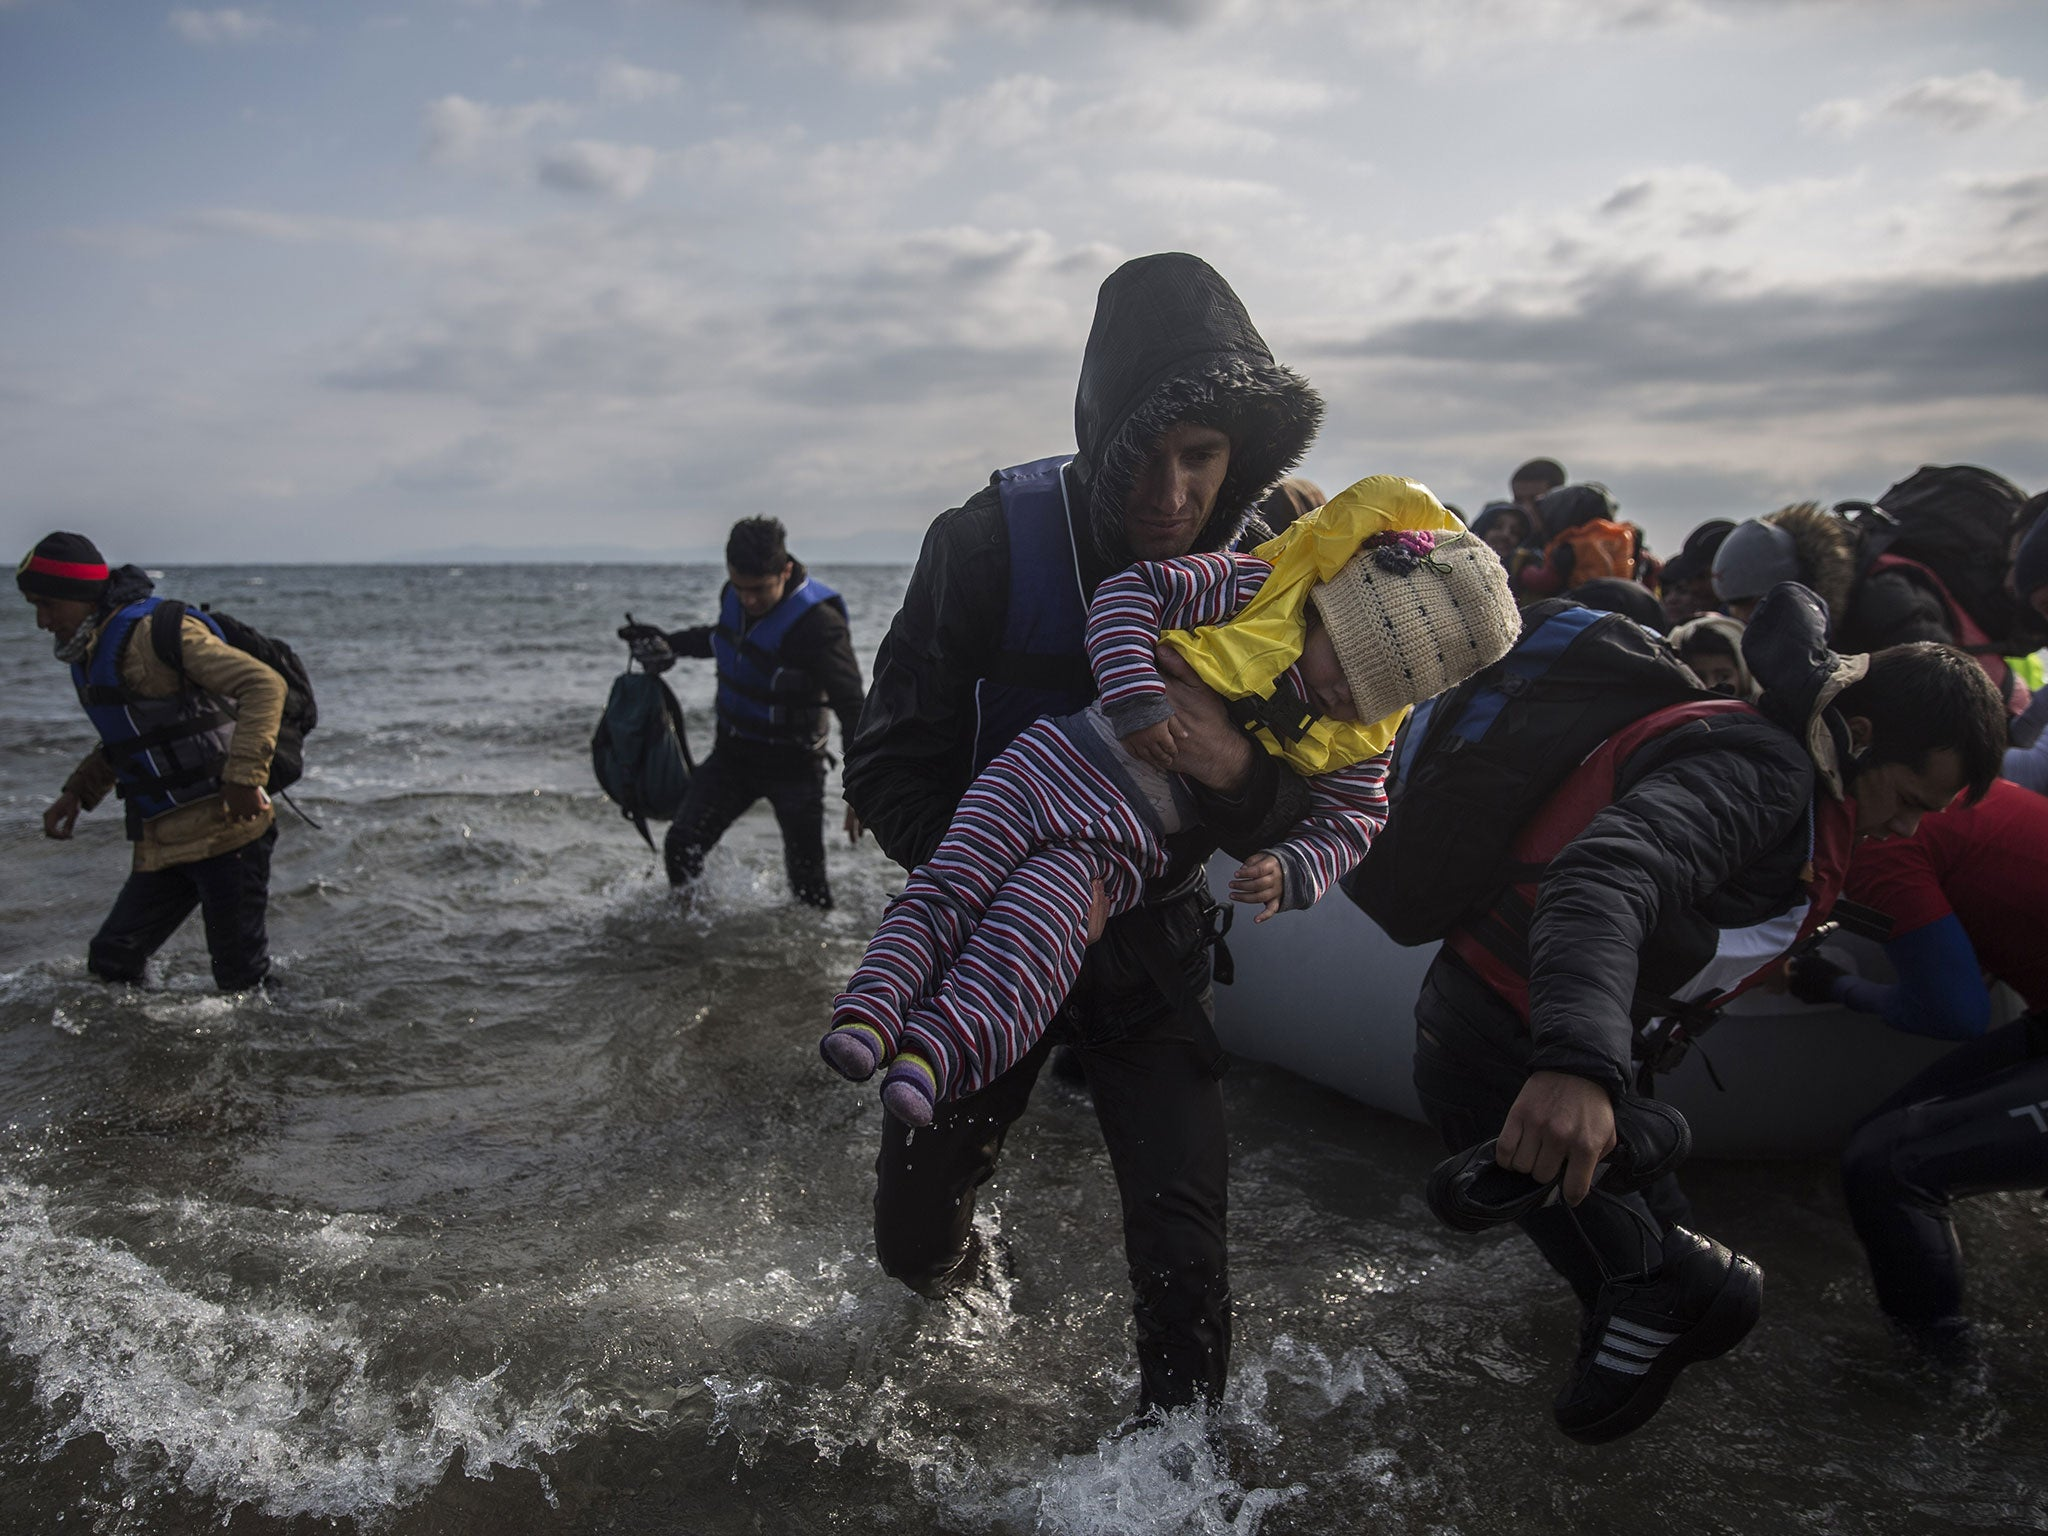 Refugee crisis: Number of people reaching Europe in 2015 ...